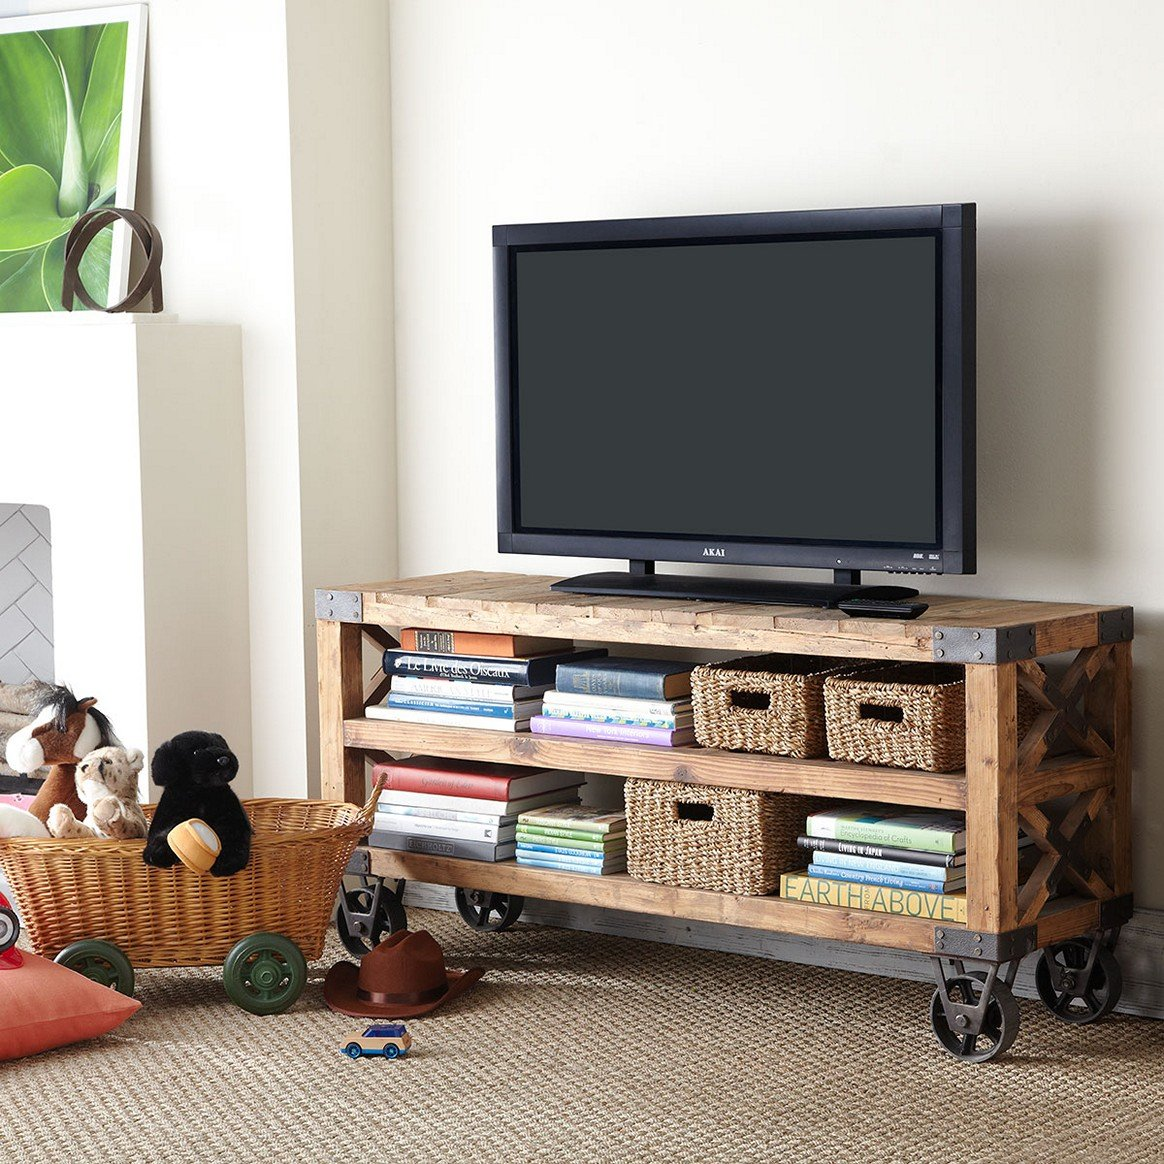 21 Diy Tv Stand Ideas For Your Weekend Home Project # Diy Meuble Tv